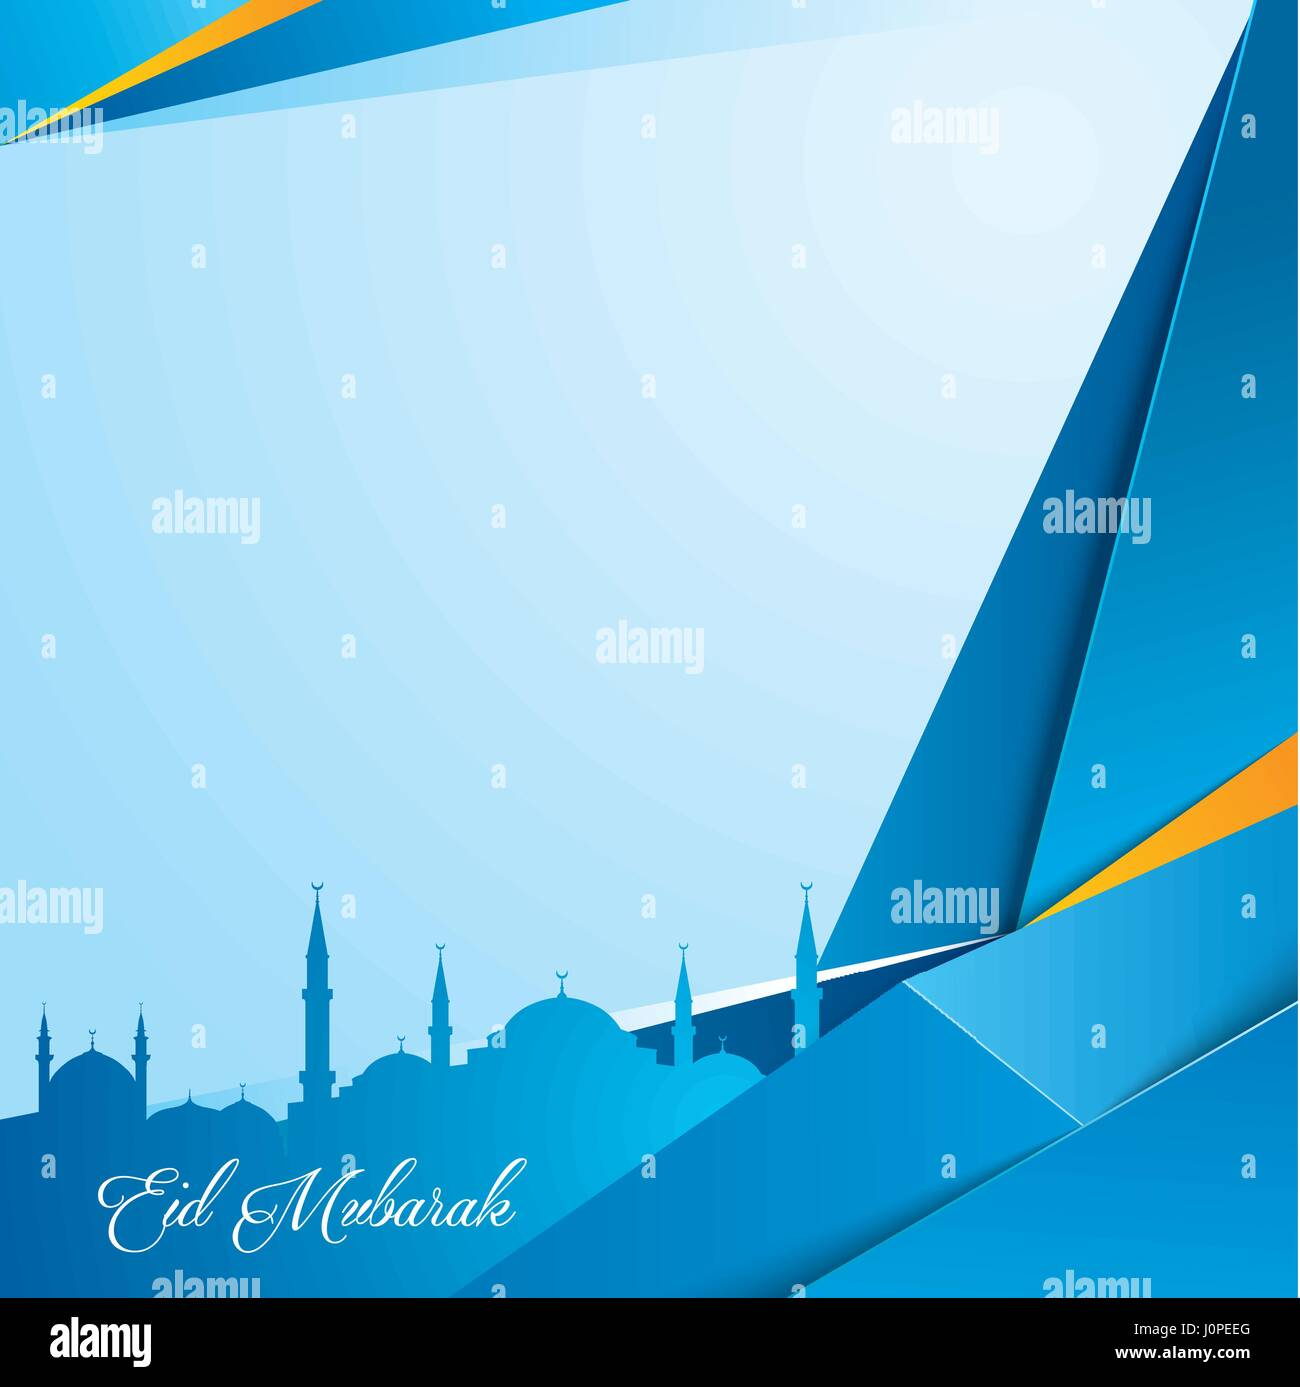 Islamic Background With Mosque Silhouette For Greeting Template Eid